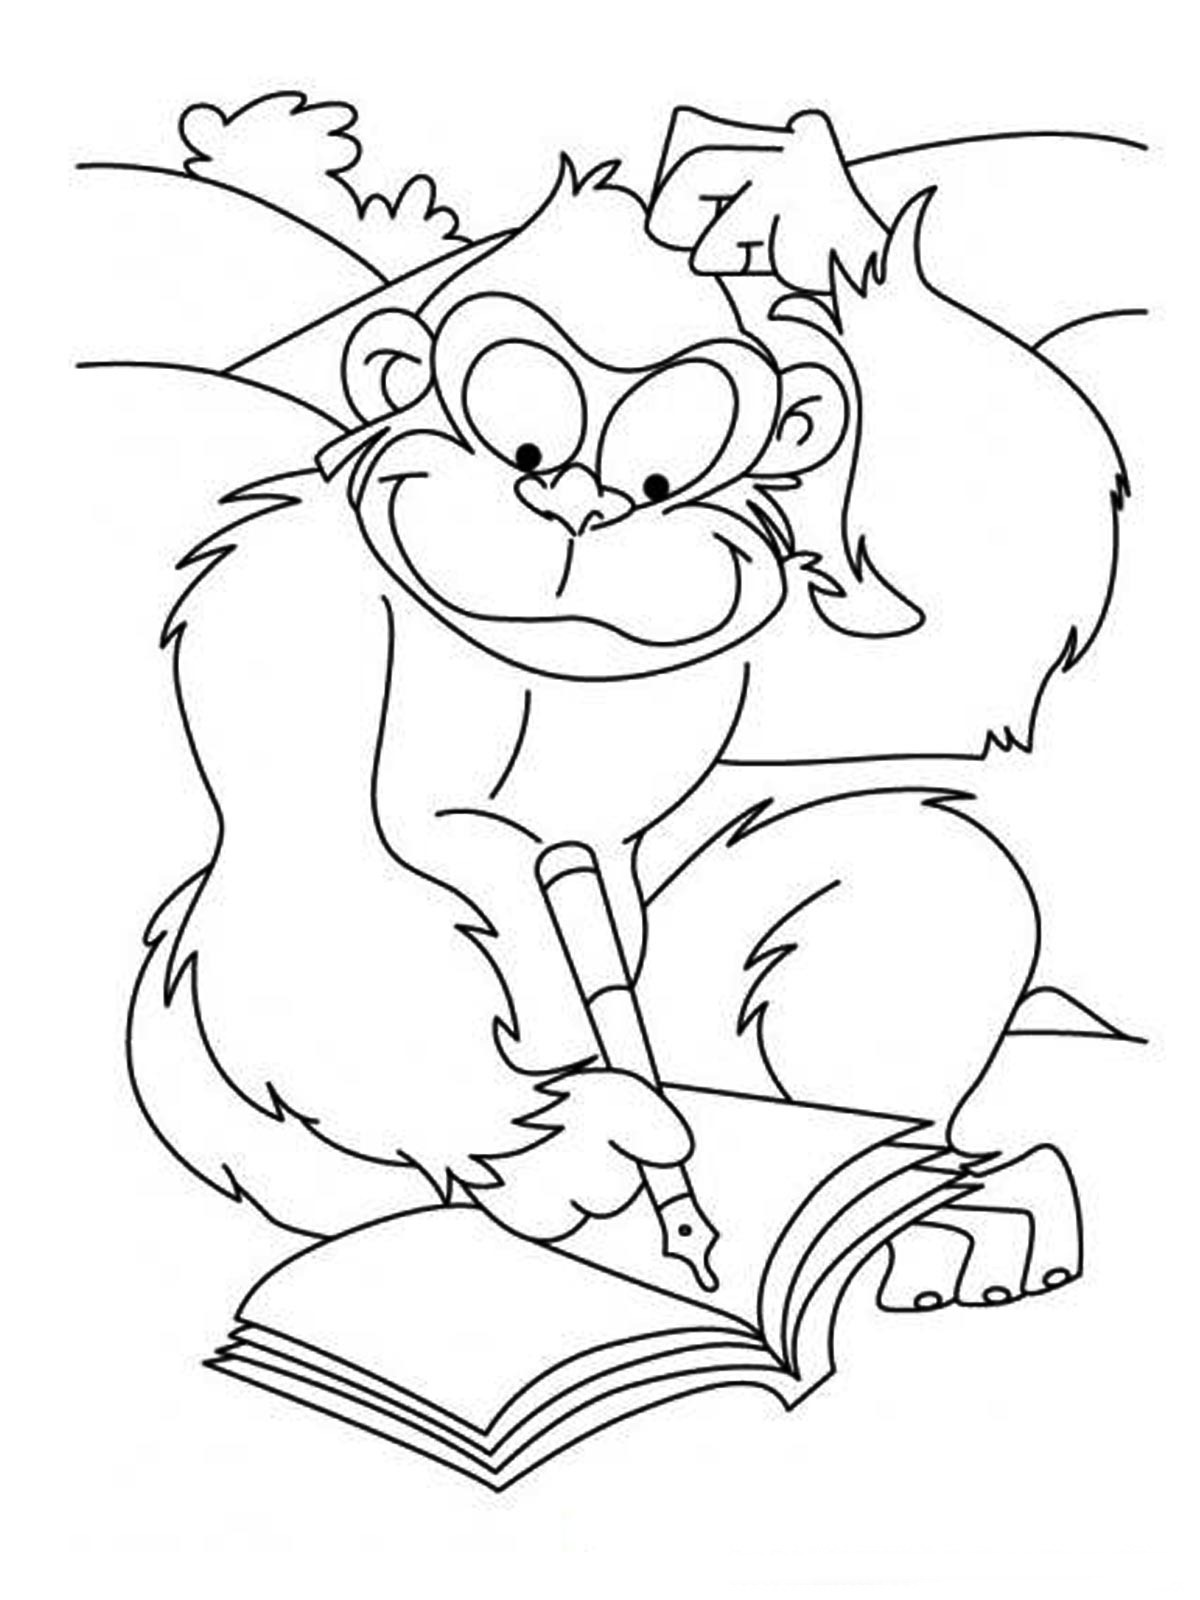 Coloring Pages Funny Animals : Apes coloring pages realistic